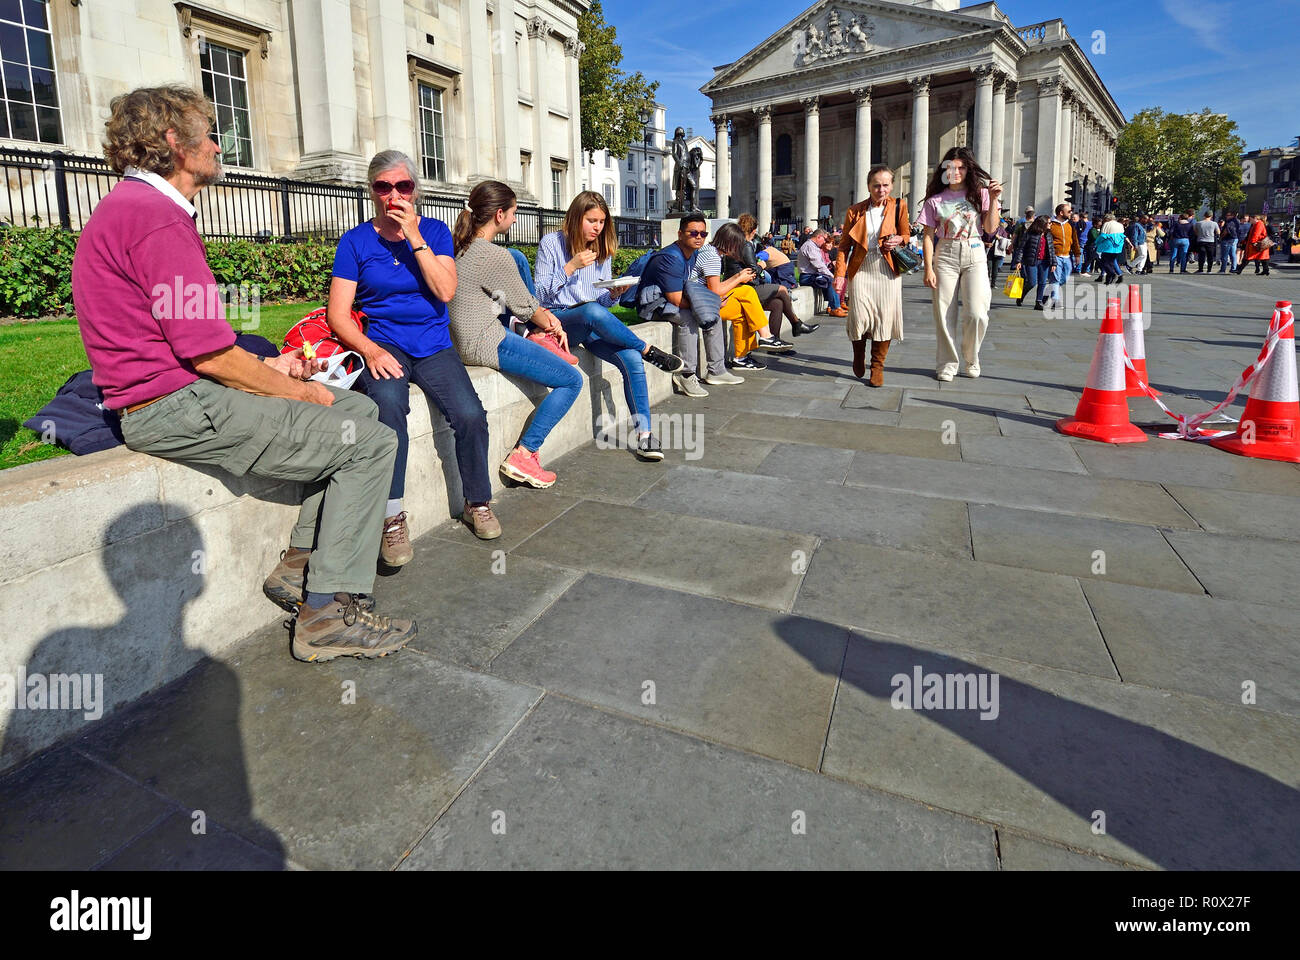 People relaxing at lunchtime in front of the National Gallery in Trafalgar Square, London, England, UK. - Stock Image